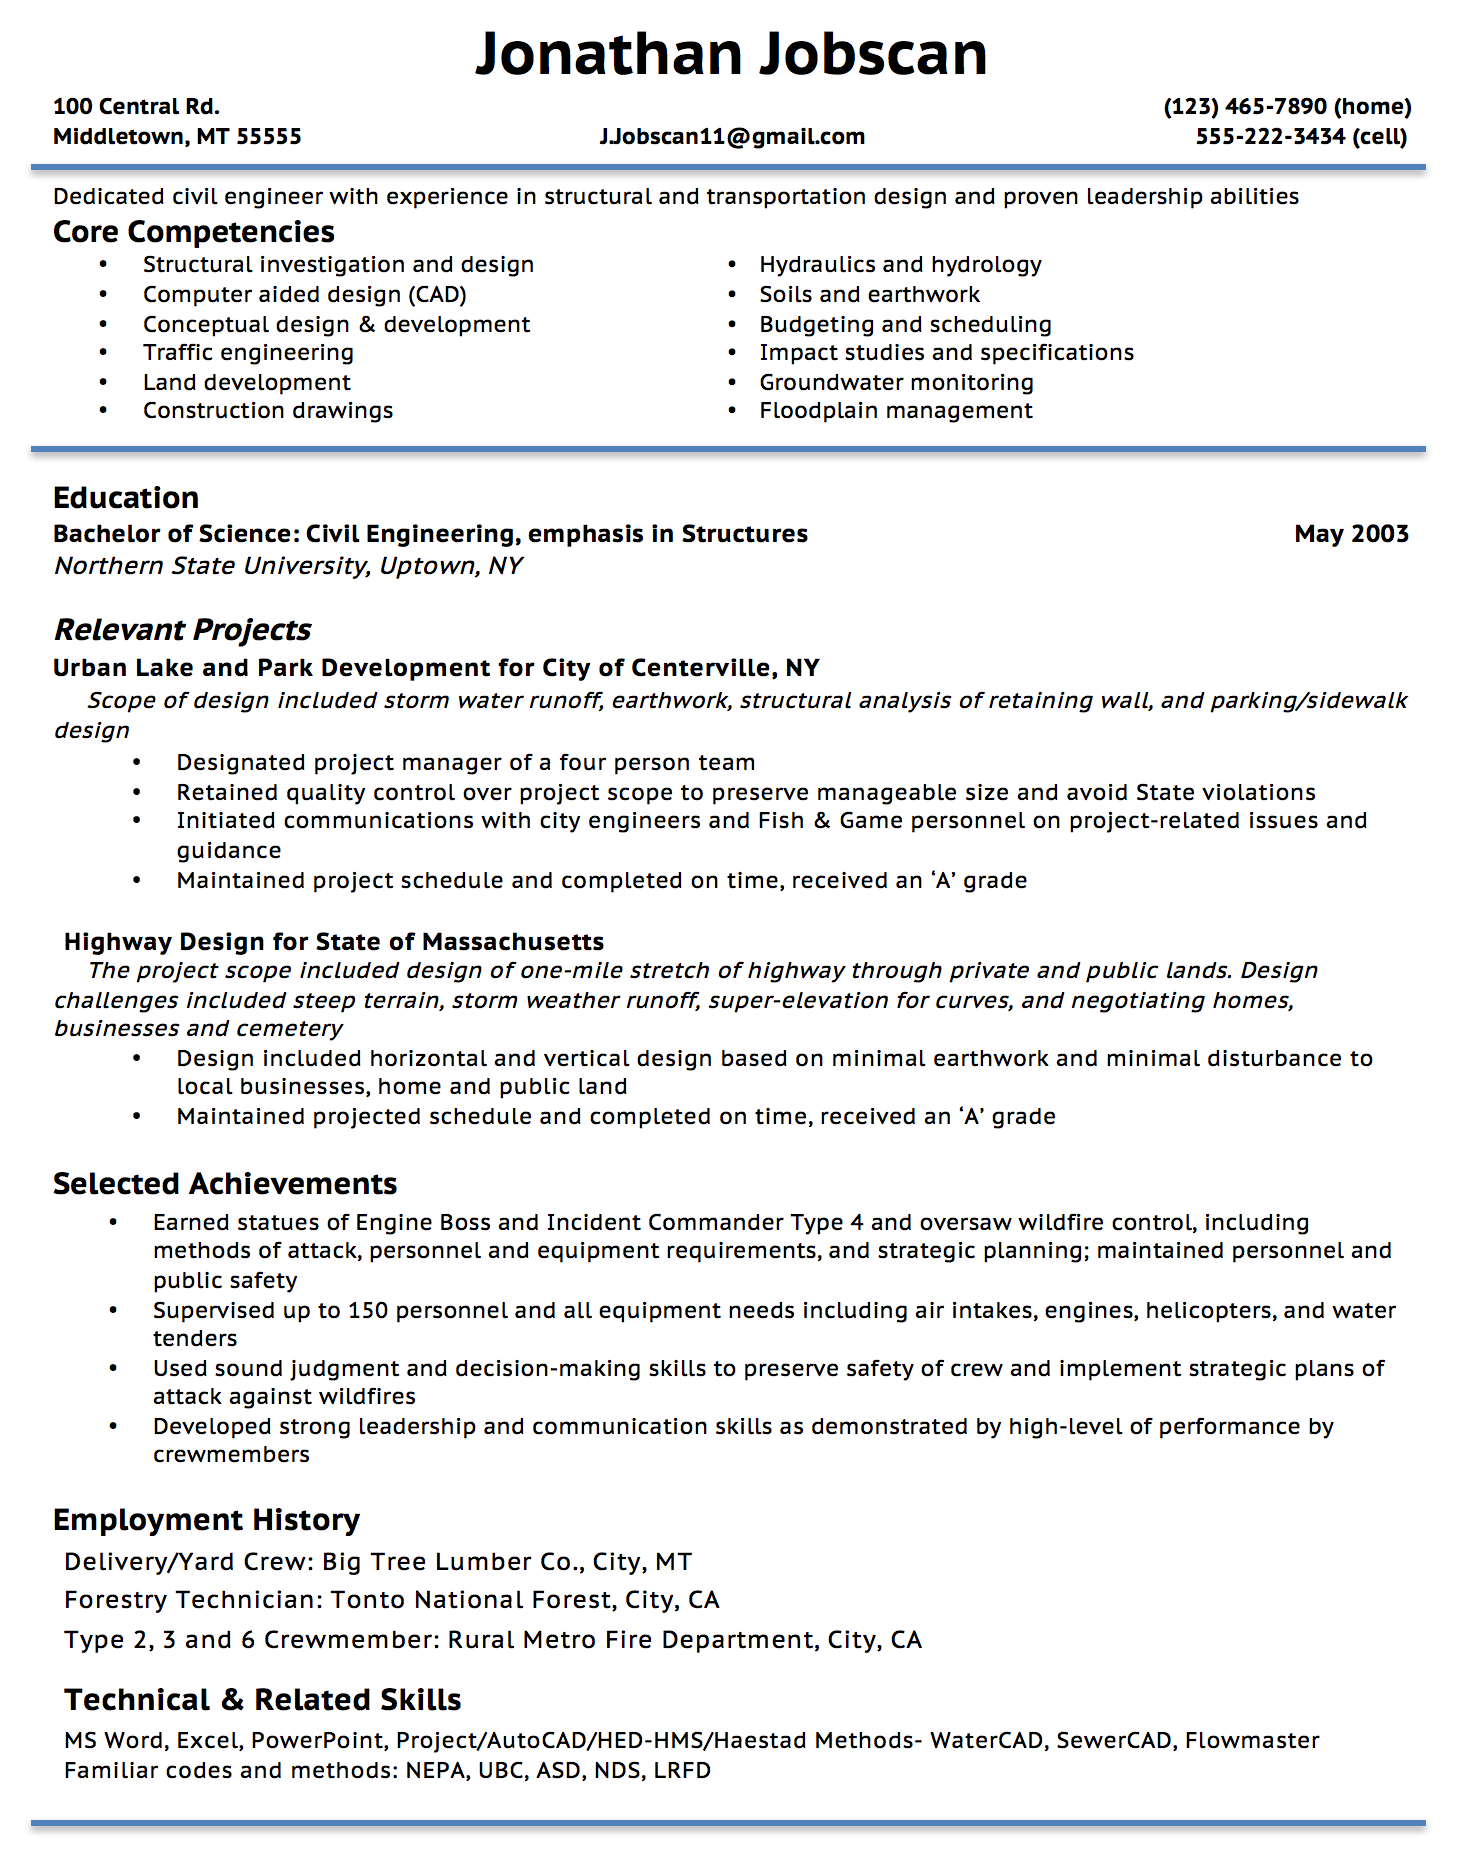 Opposenewapstandardsus  Pretty Resume Writing Guide  Jobscan With Fair Example Of A Functional Resume Format With Breathtaking Example Of Nurse Resume Also It Executive Resume In Addition Sample Resume Word And Define Resume For A Job As Well As Group Fitness Instructor Resume Additionally Customer Service Agent Resume From Jobscanco With Opposenewapstandardsus  Fair Resume Writing Guide  Jobscan With Breathtaking Example Of A Functional Resume Format And Pretty Example Of Nurse Resume Also It Executive Resume In Addition Sample Resume Word From Jobscanco